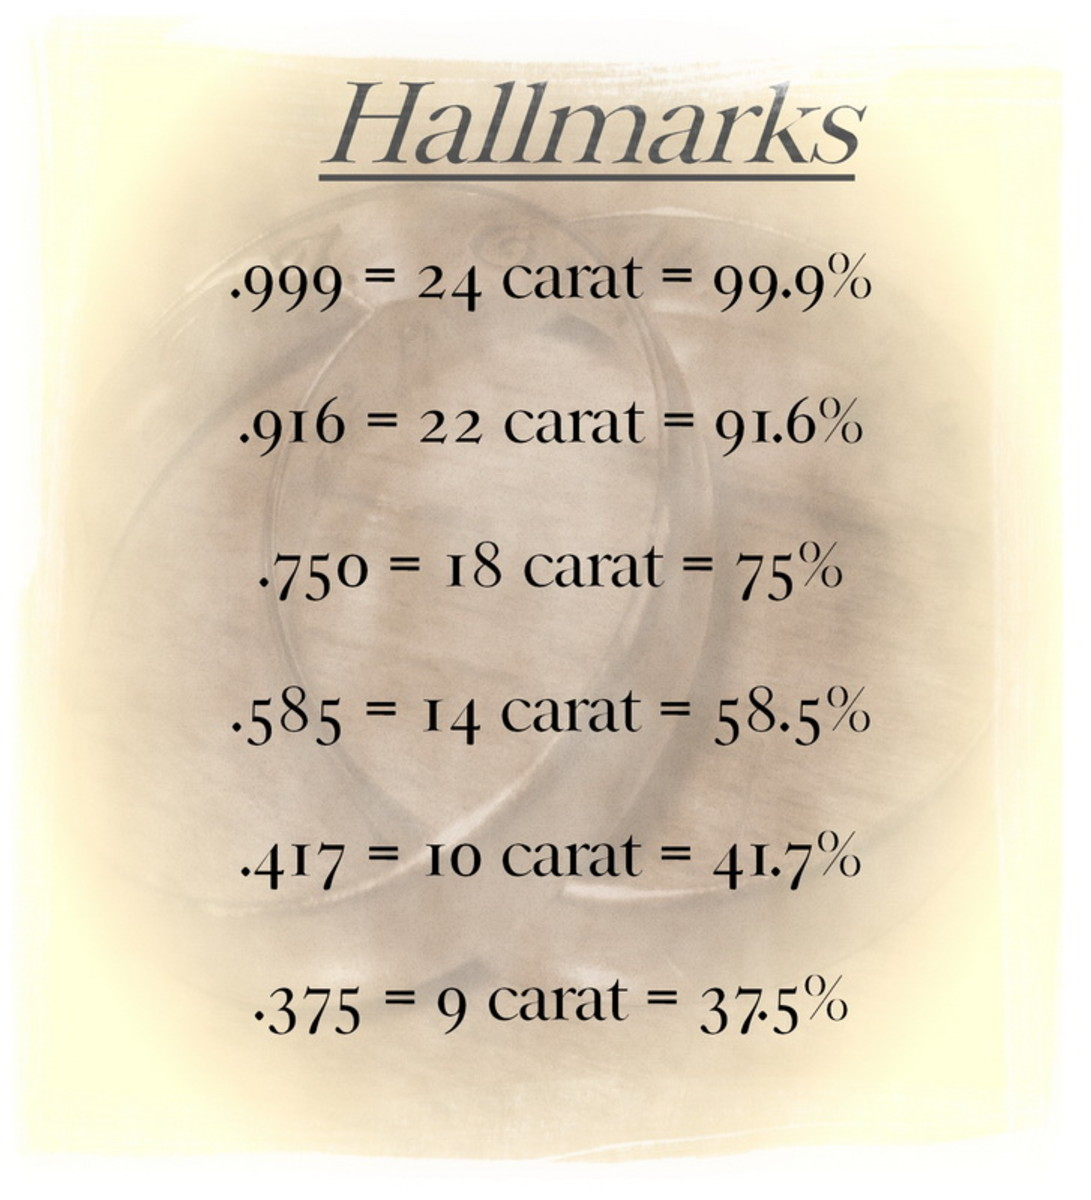 List of gold hallmarks